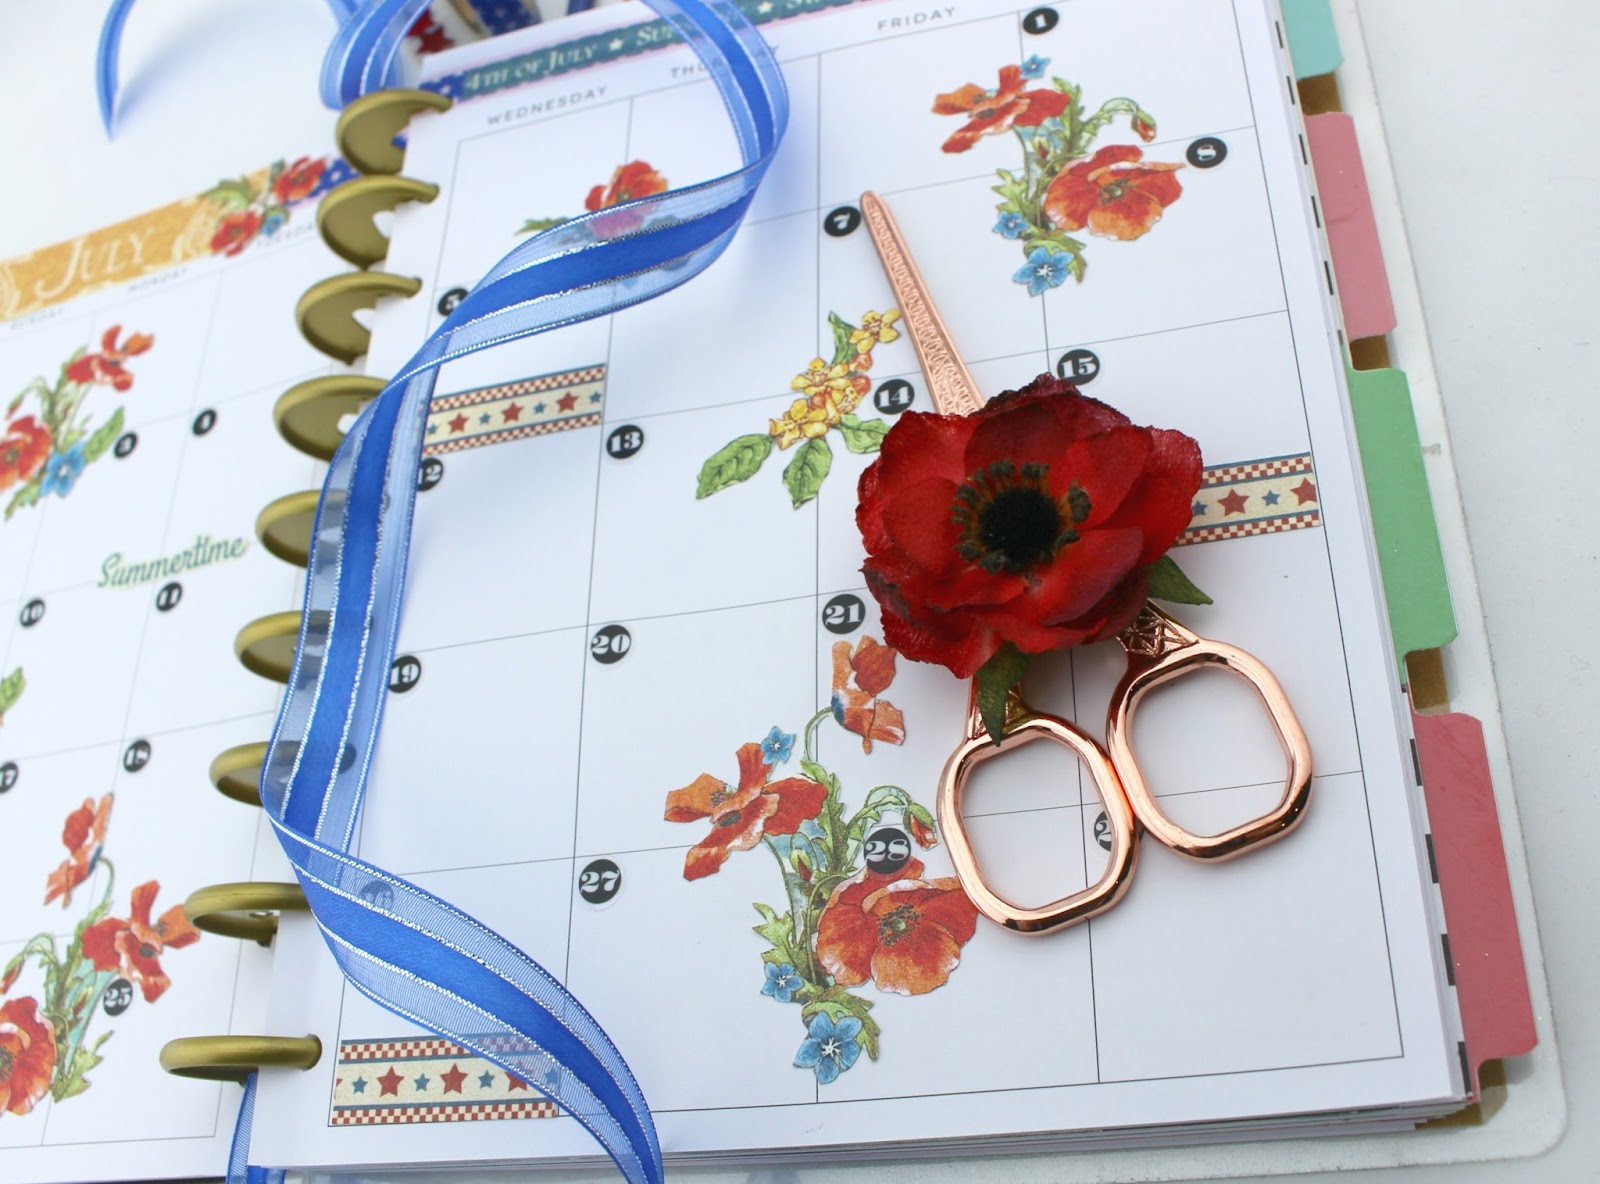 My JULY G45 Planner, Children's Hour By Magda Cortez, Product by G45, Photo 06 of 20  .jpg